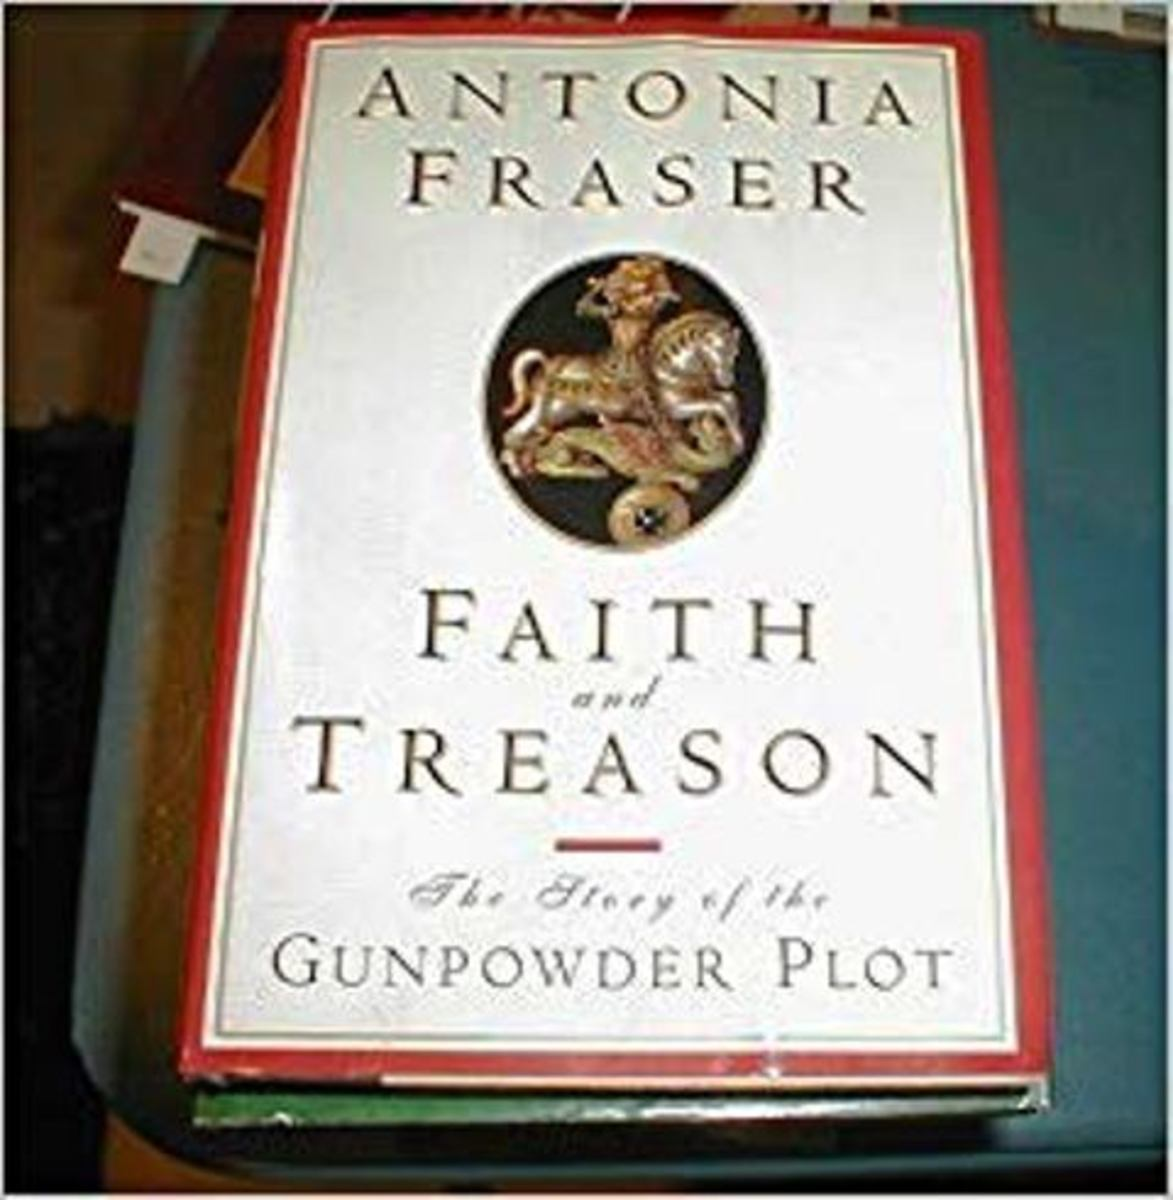 A full account of how and why the Gunpowder Plot was formed, how it was laid bare and the consequences